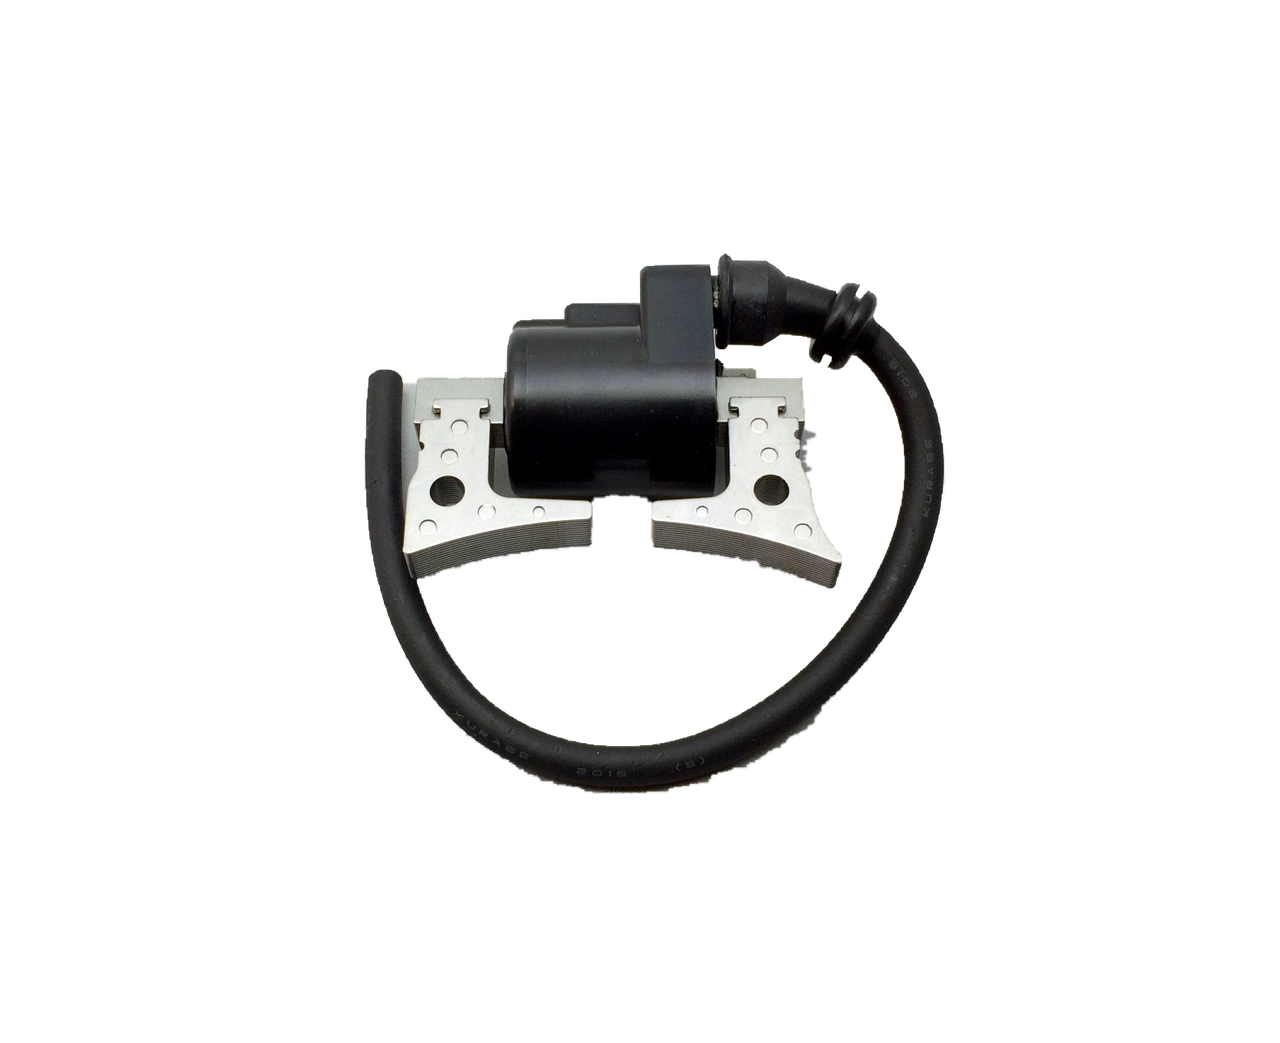 SUBARU IGNITION COIL (277-79431-11)